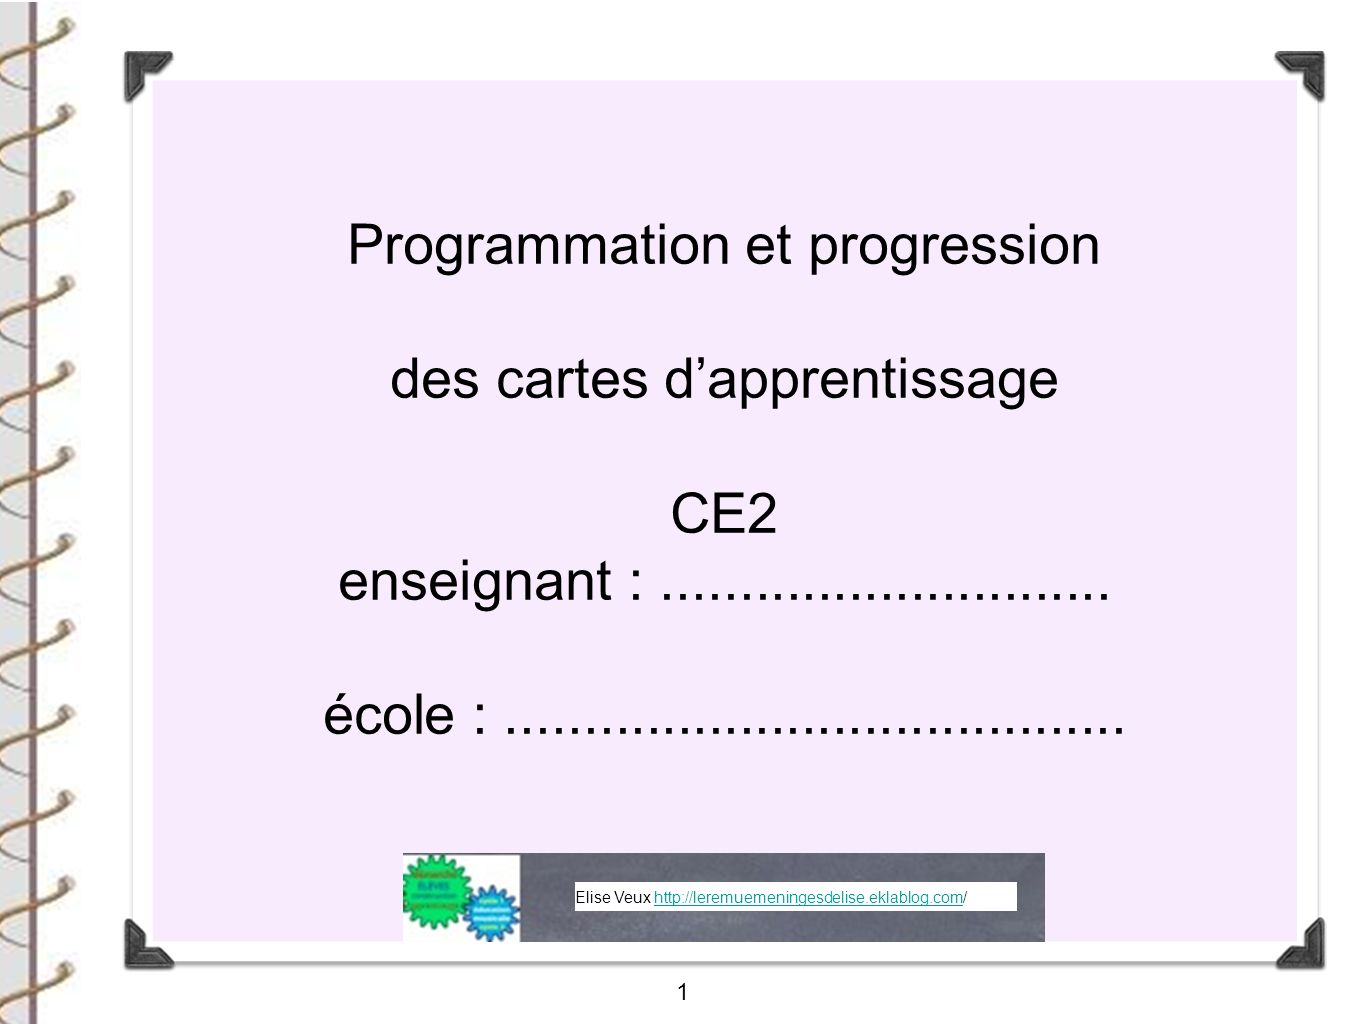 Programmation et progression des cartes d'apprentissage CE2